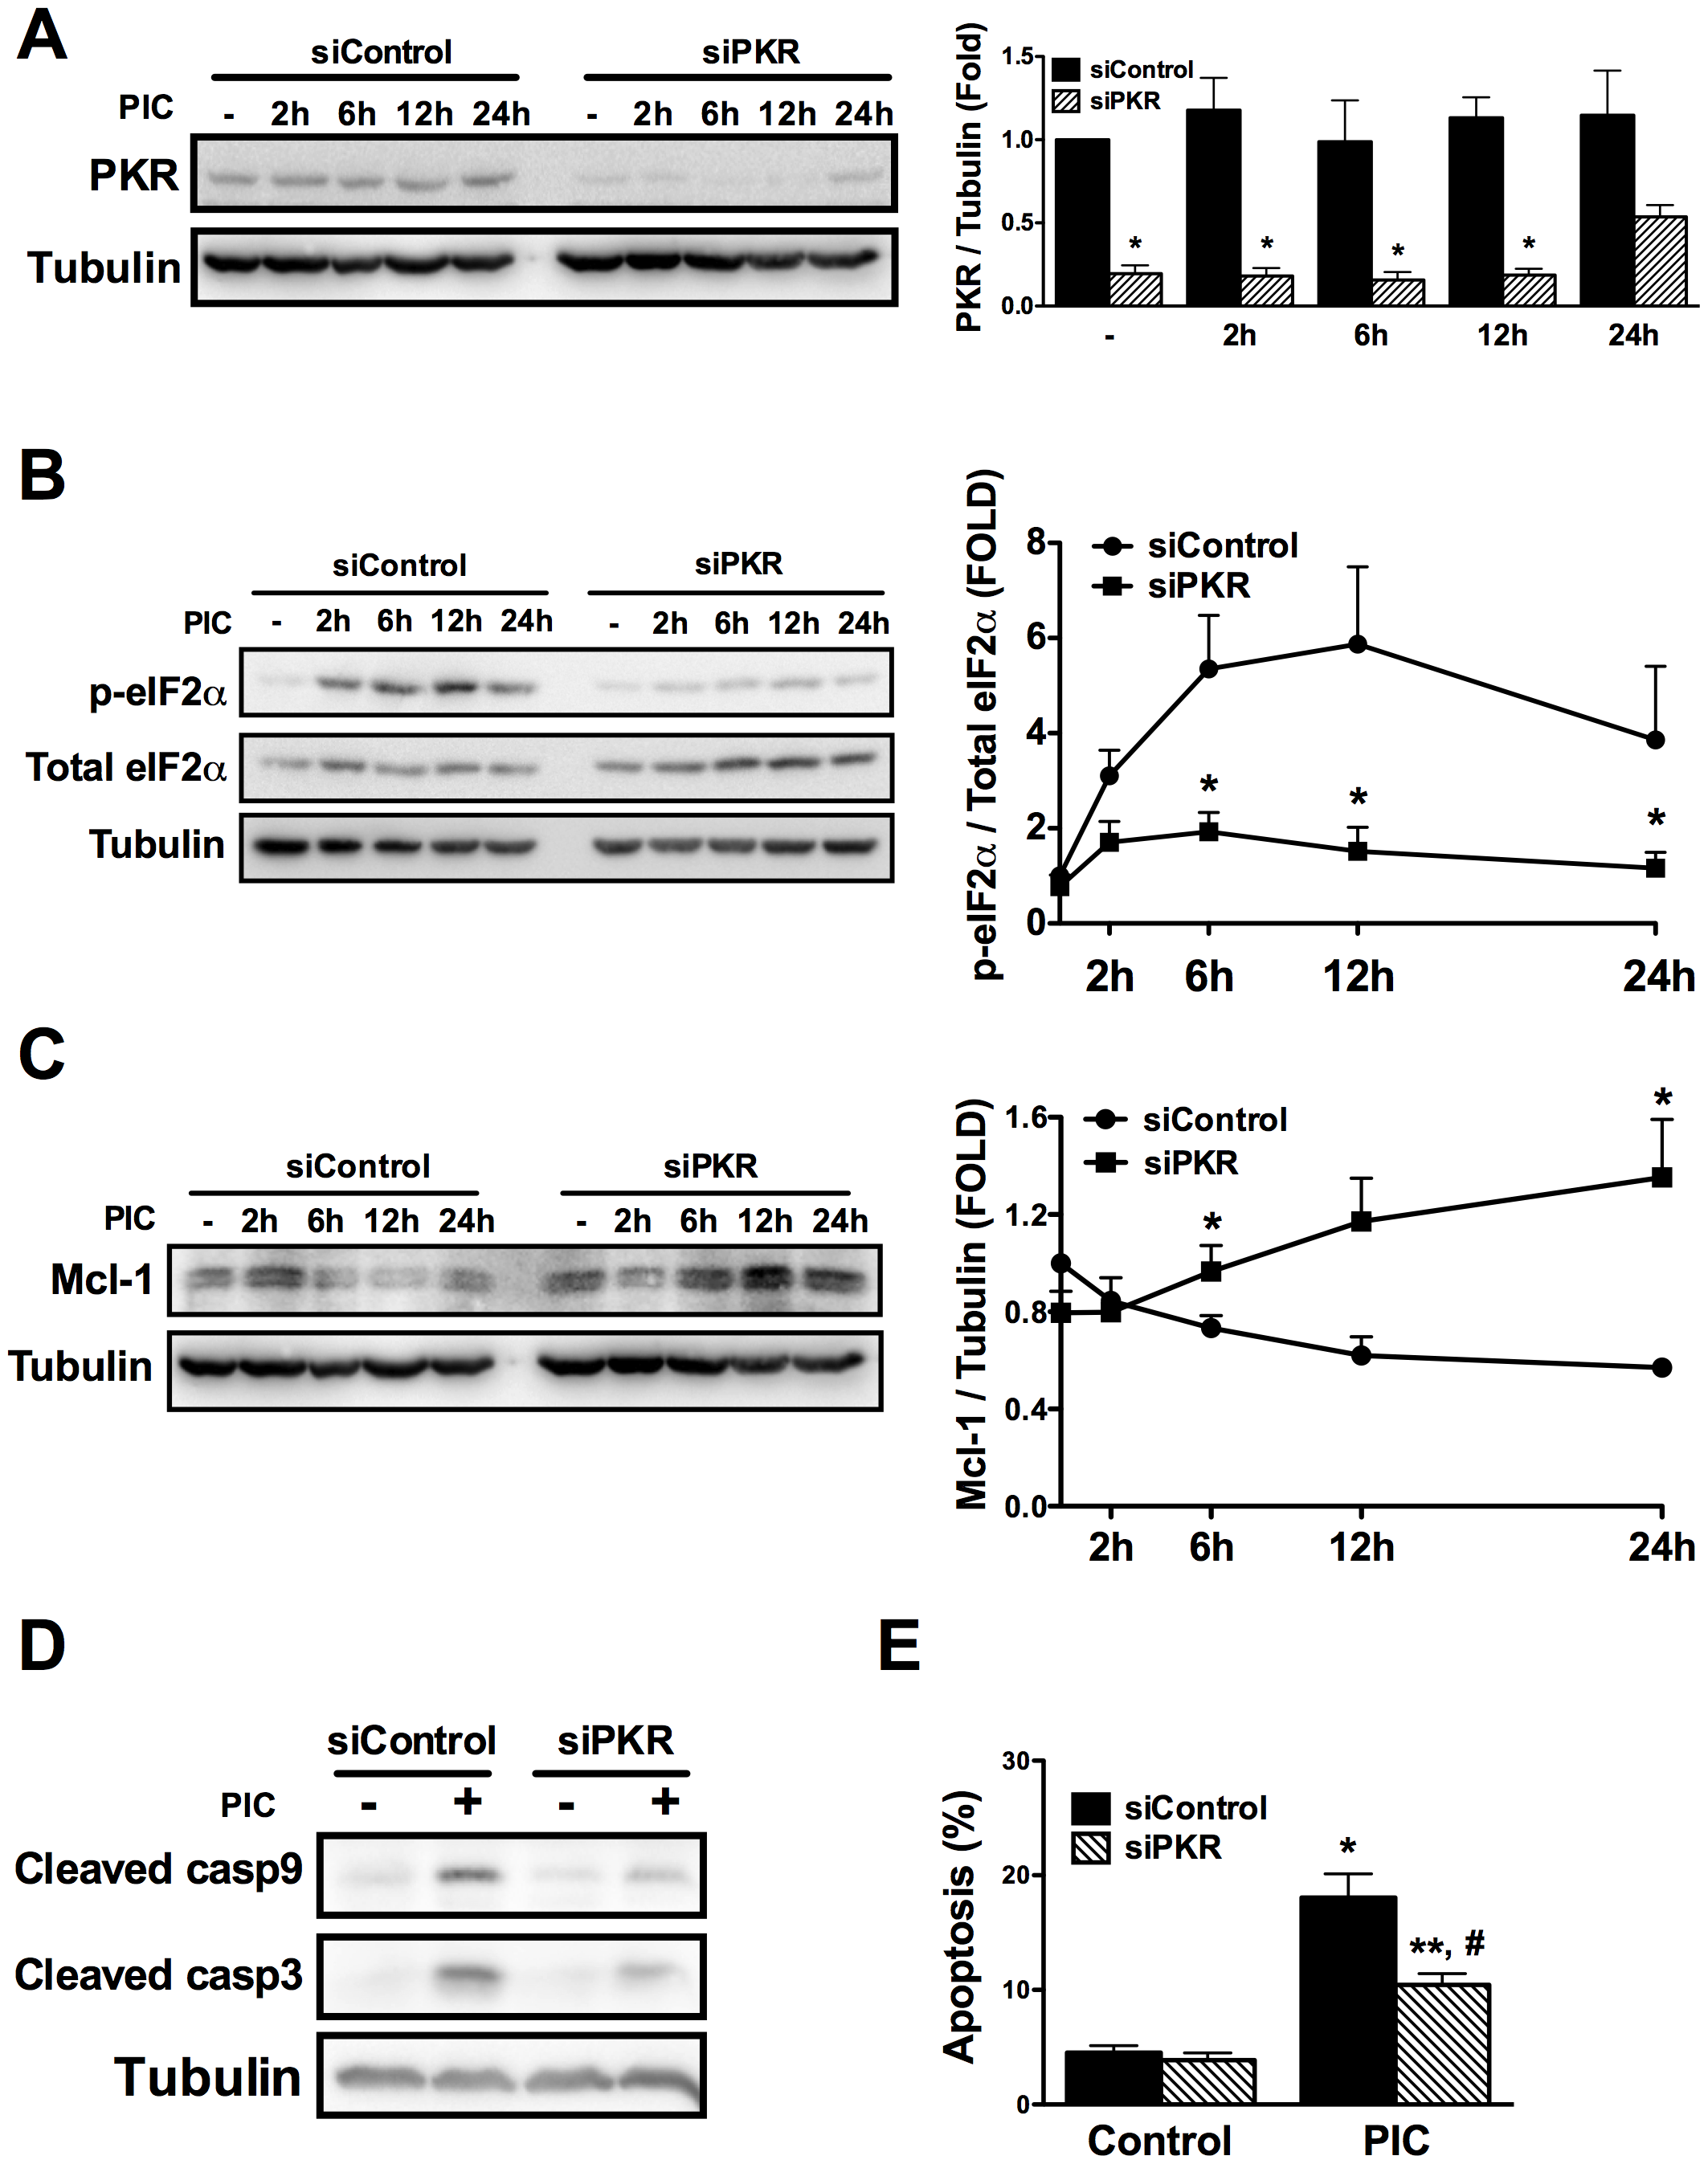 dsRNA-induced decrease in Mcl-1 protein expression depends on eIF2α phosphorylation by PKR.